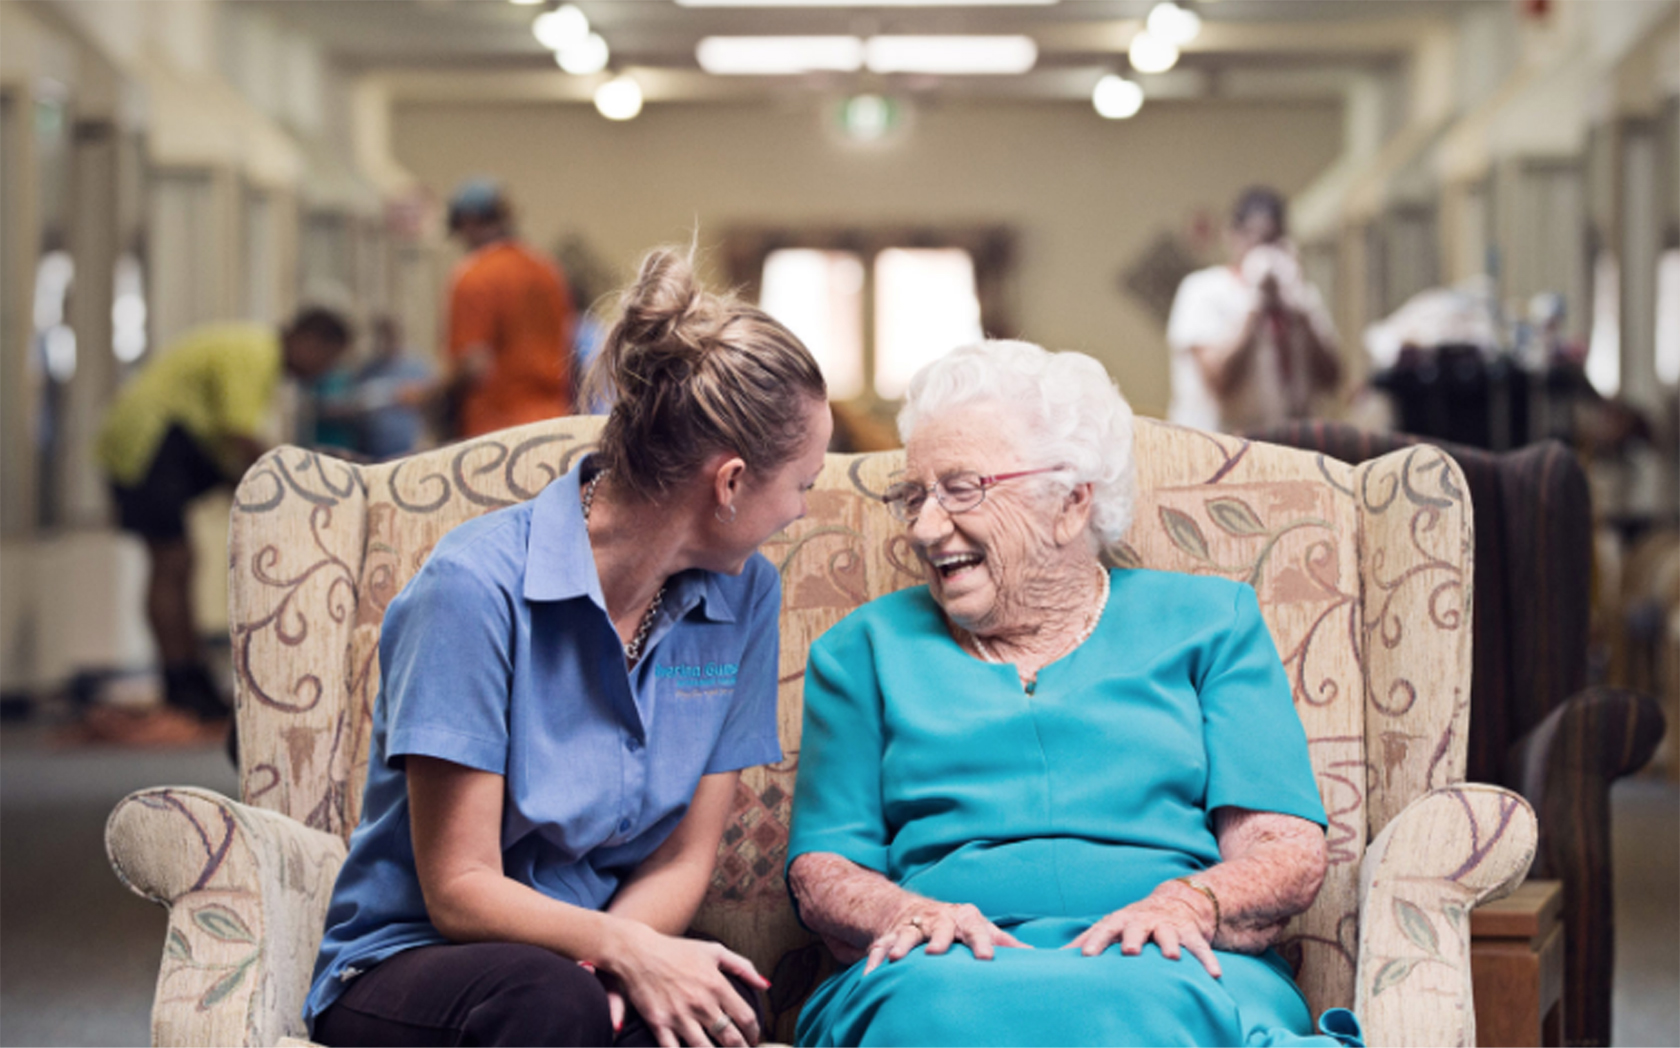 Take advantage of unprecedented demand for quality health and aged care services